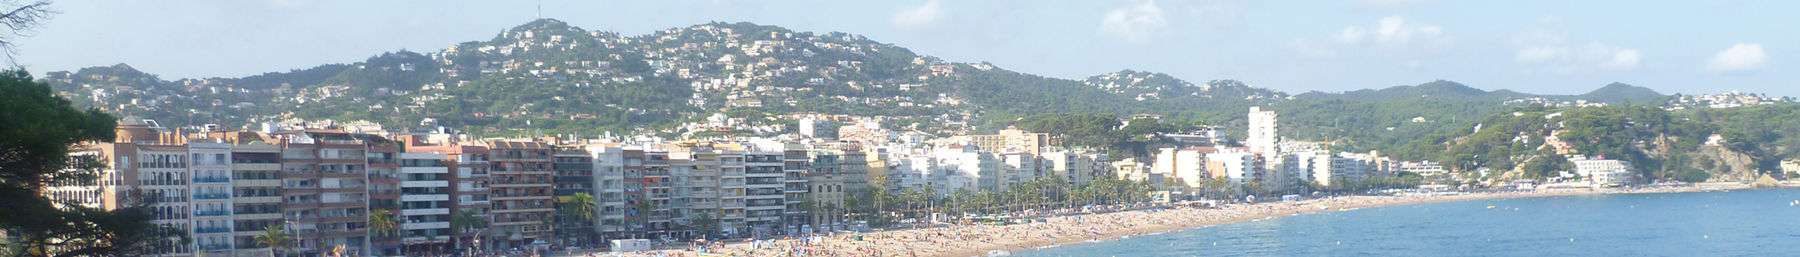 Lloret del Mar banner the beach.jpg